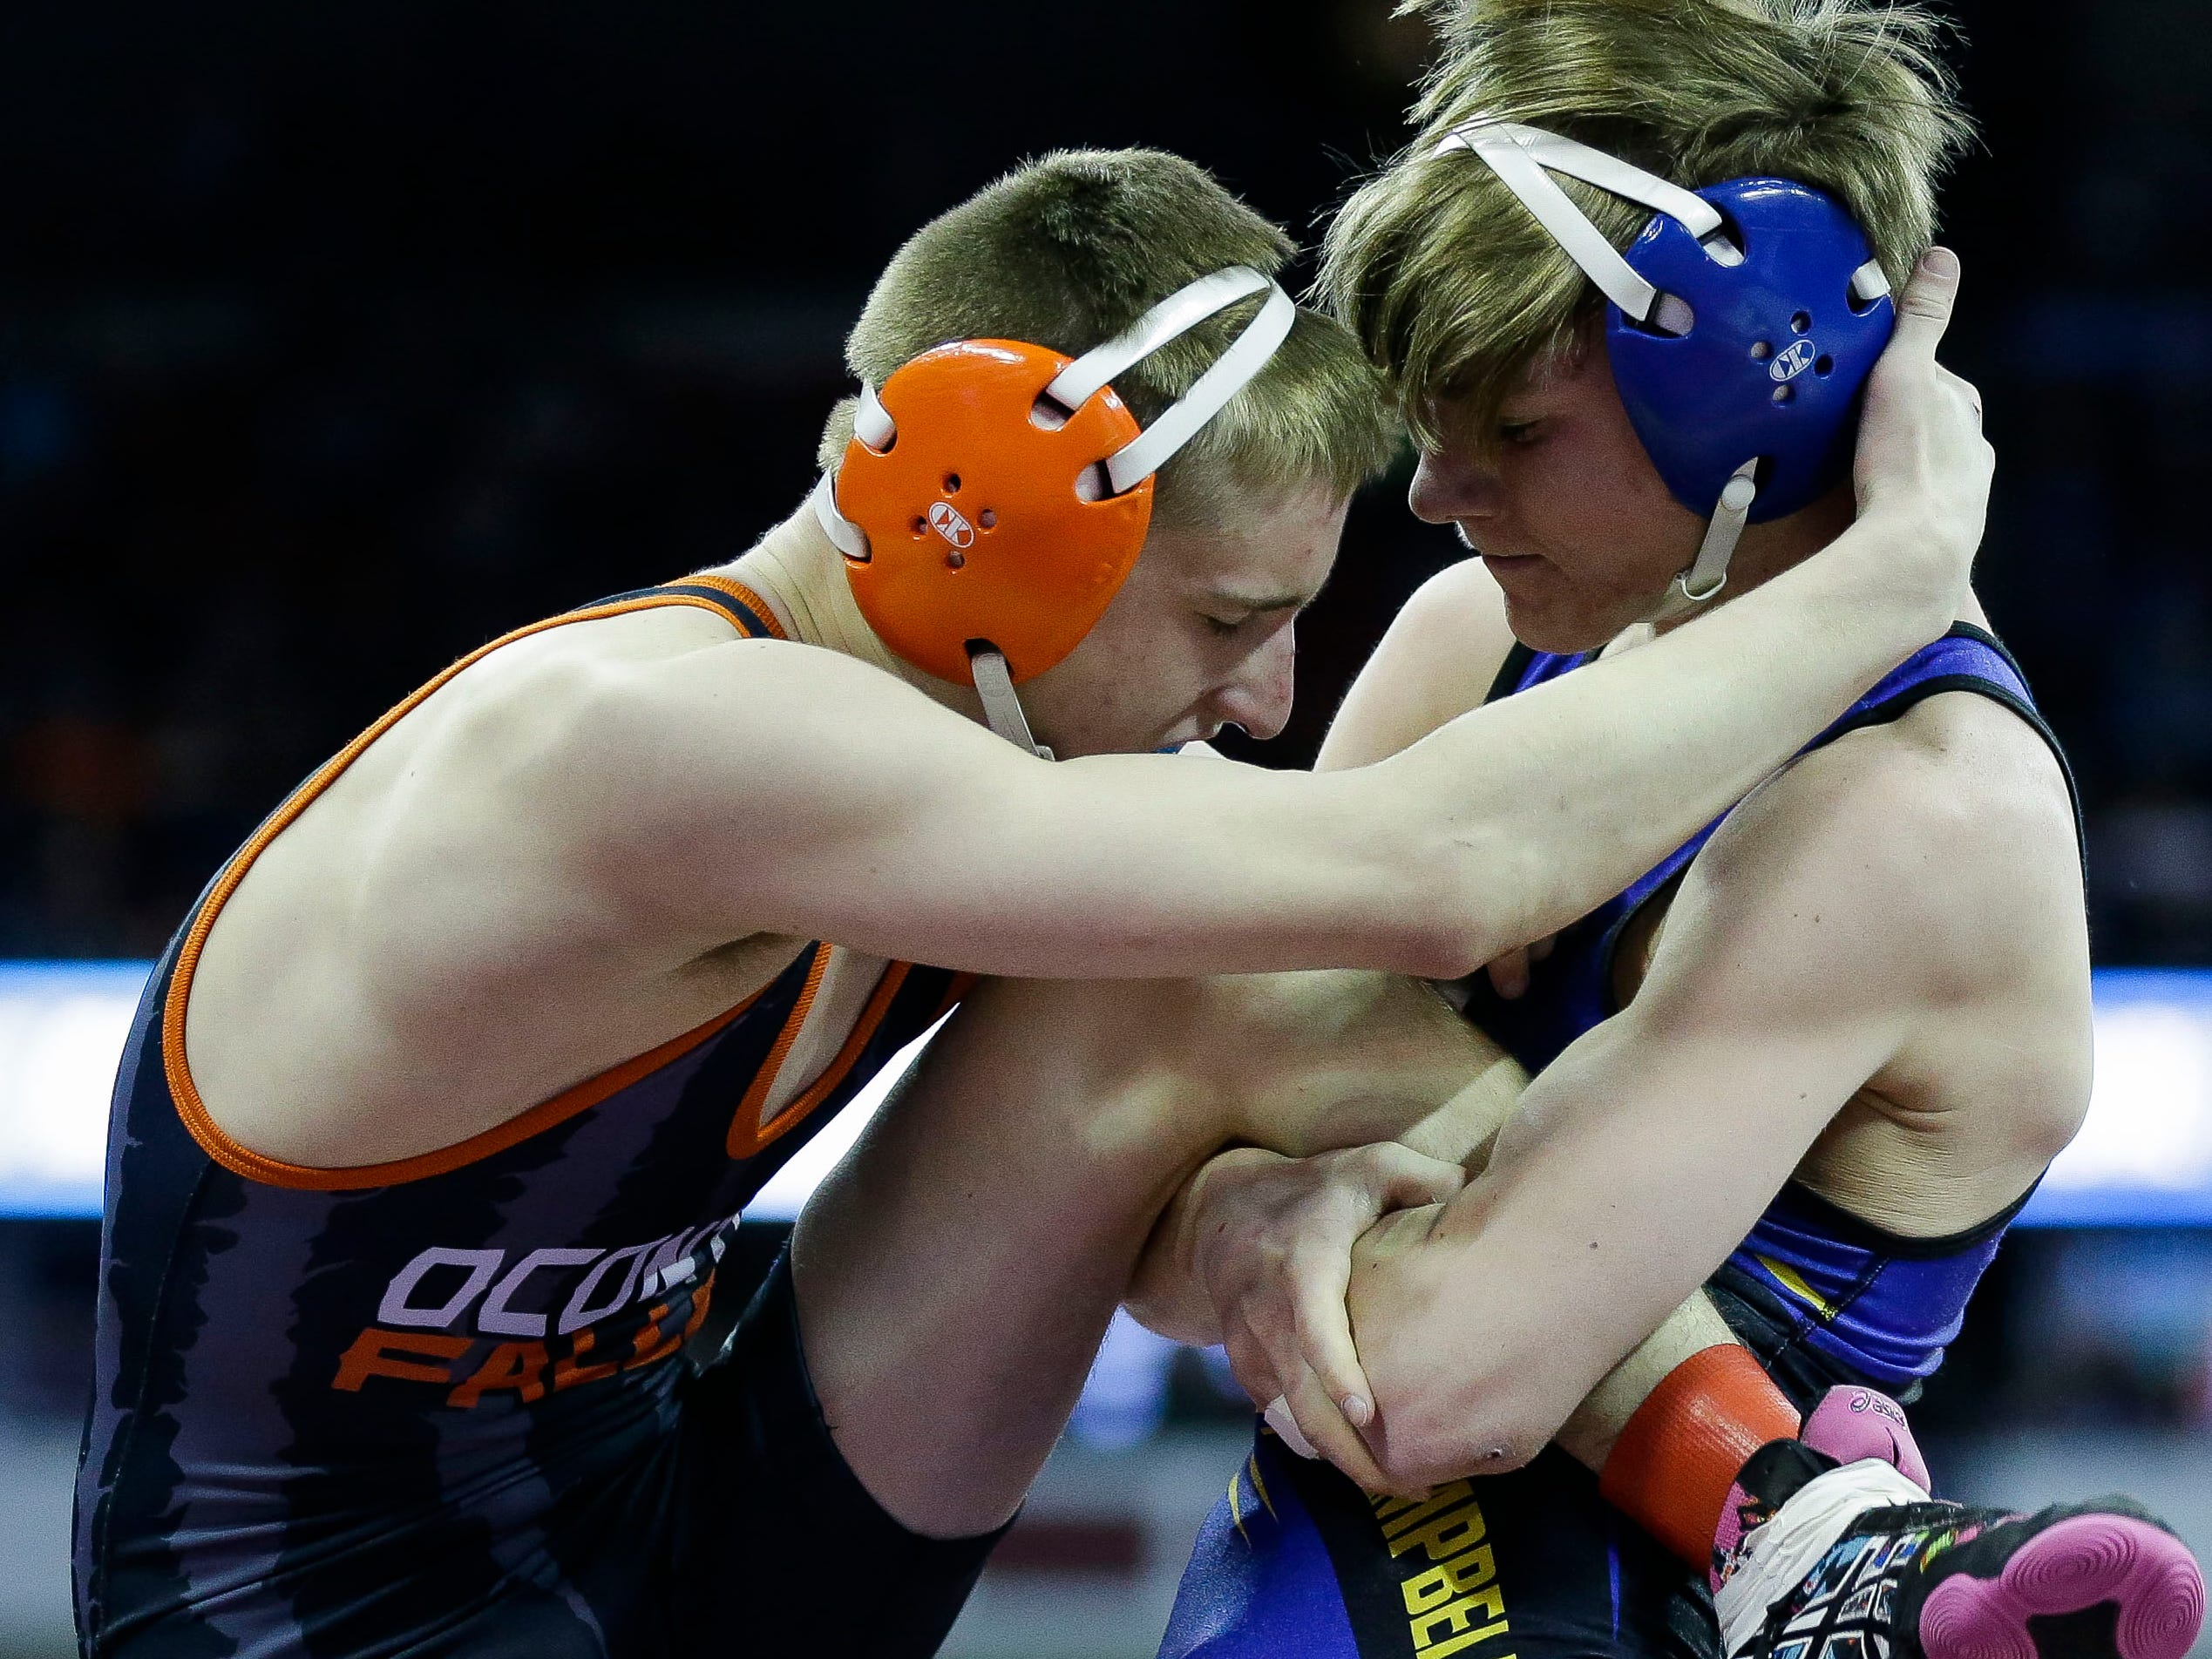 Elkhart Lake-Glenbeulah/Howards Grove's Cody Rebedew works to take down Oconto Falls' Tyler Budz in a Division 2 126-pound preliminary match during the WIAA state wrestling tournament on Thursday, February 21, 2019, at the Kohl Center in Madison, Wis.